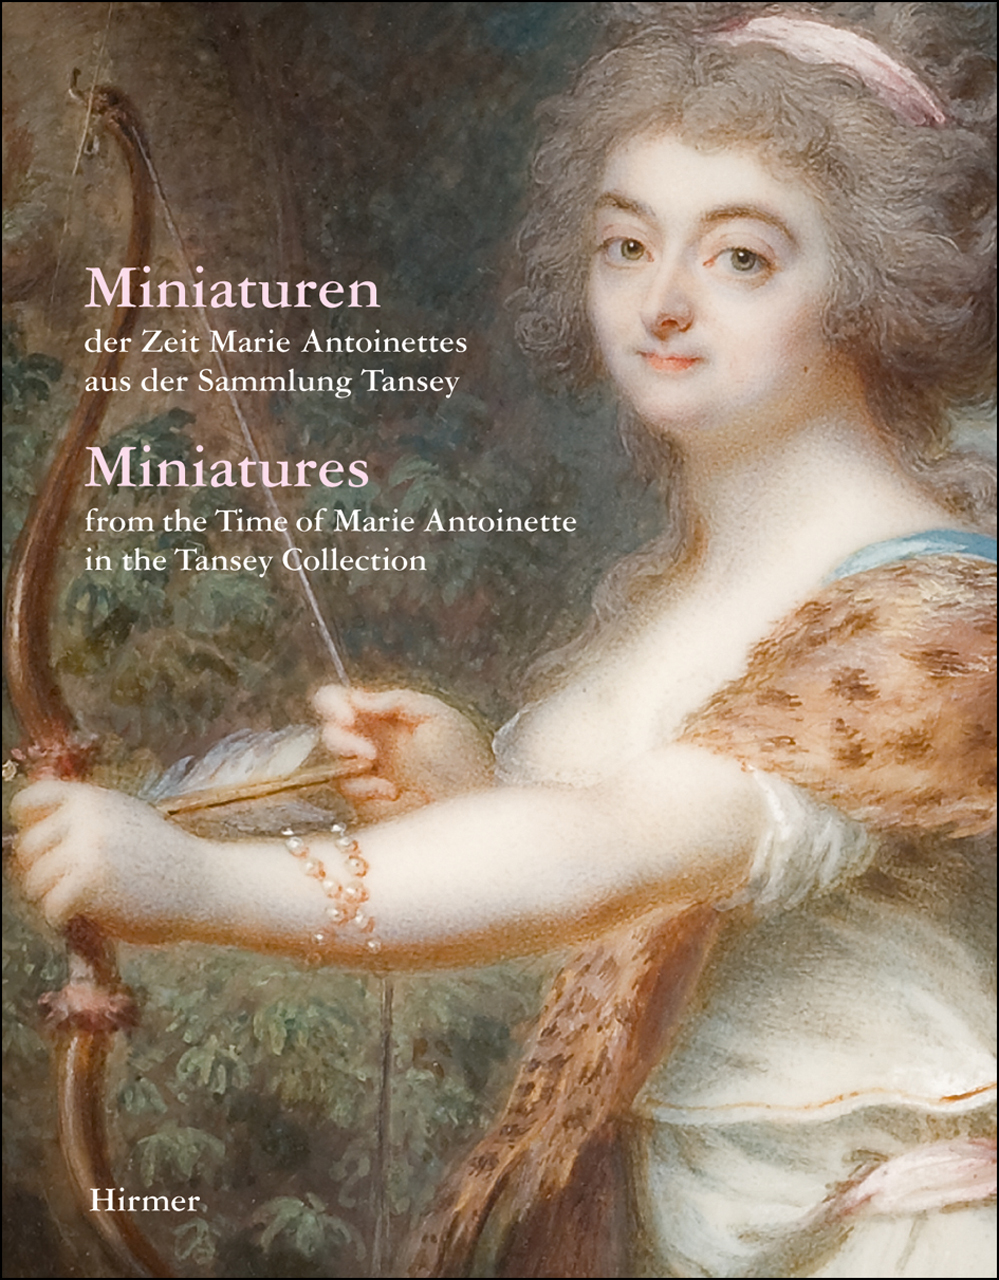 Miniatures: From the Time of Marie Antoinette in the Tansey Collection